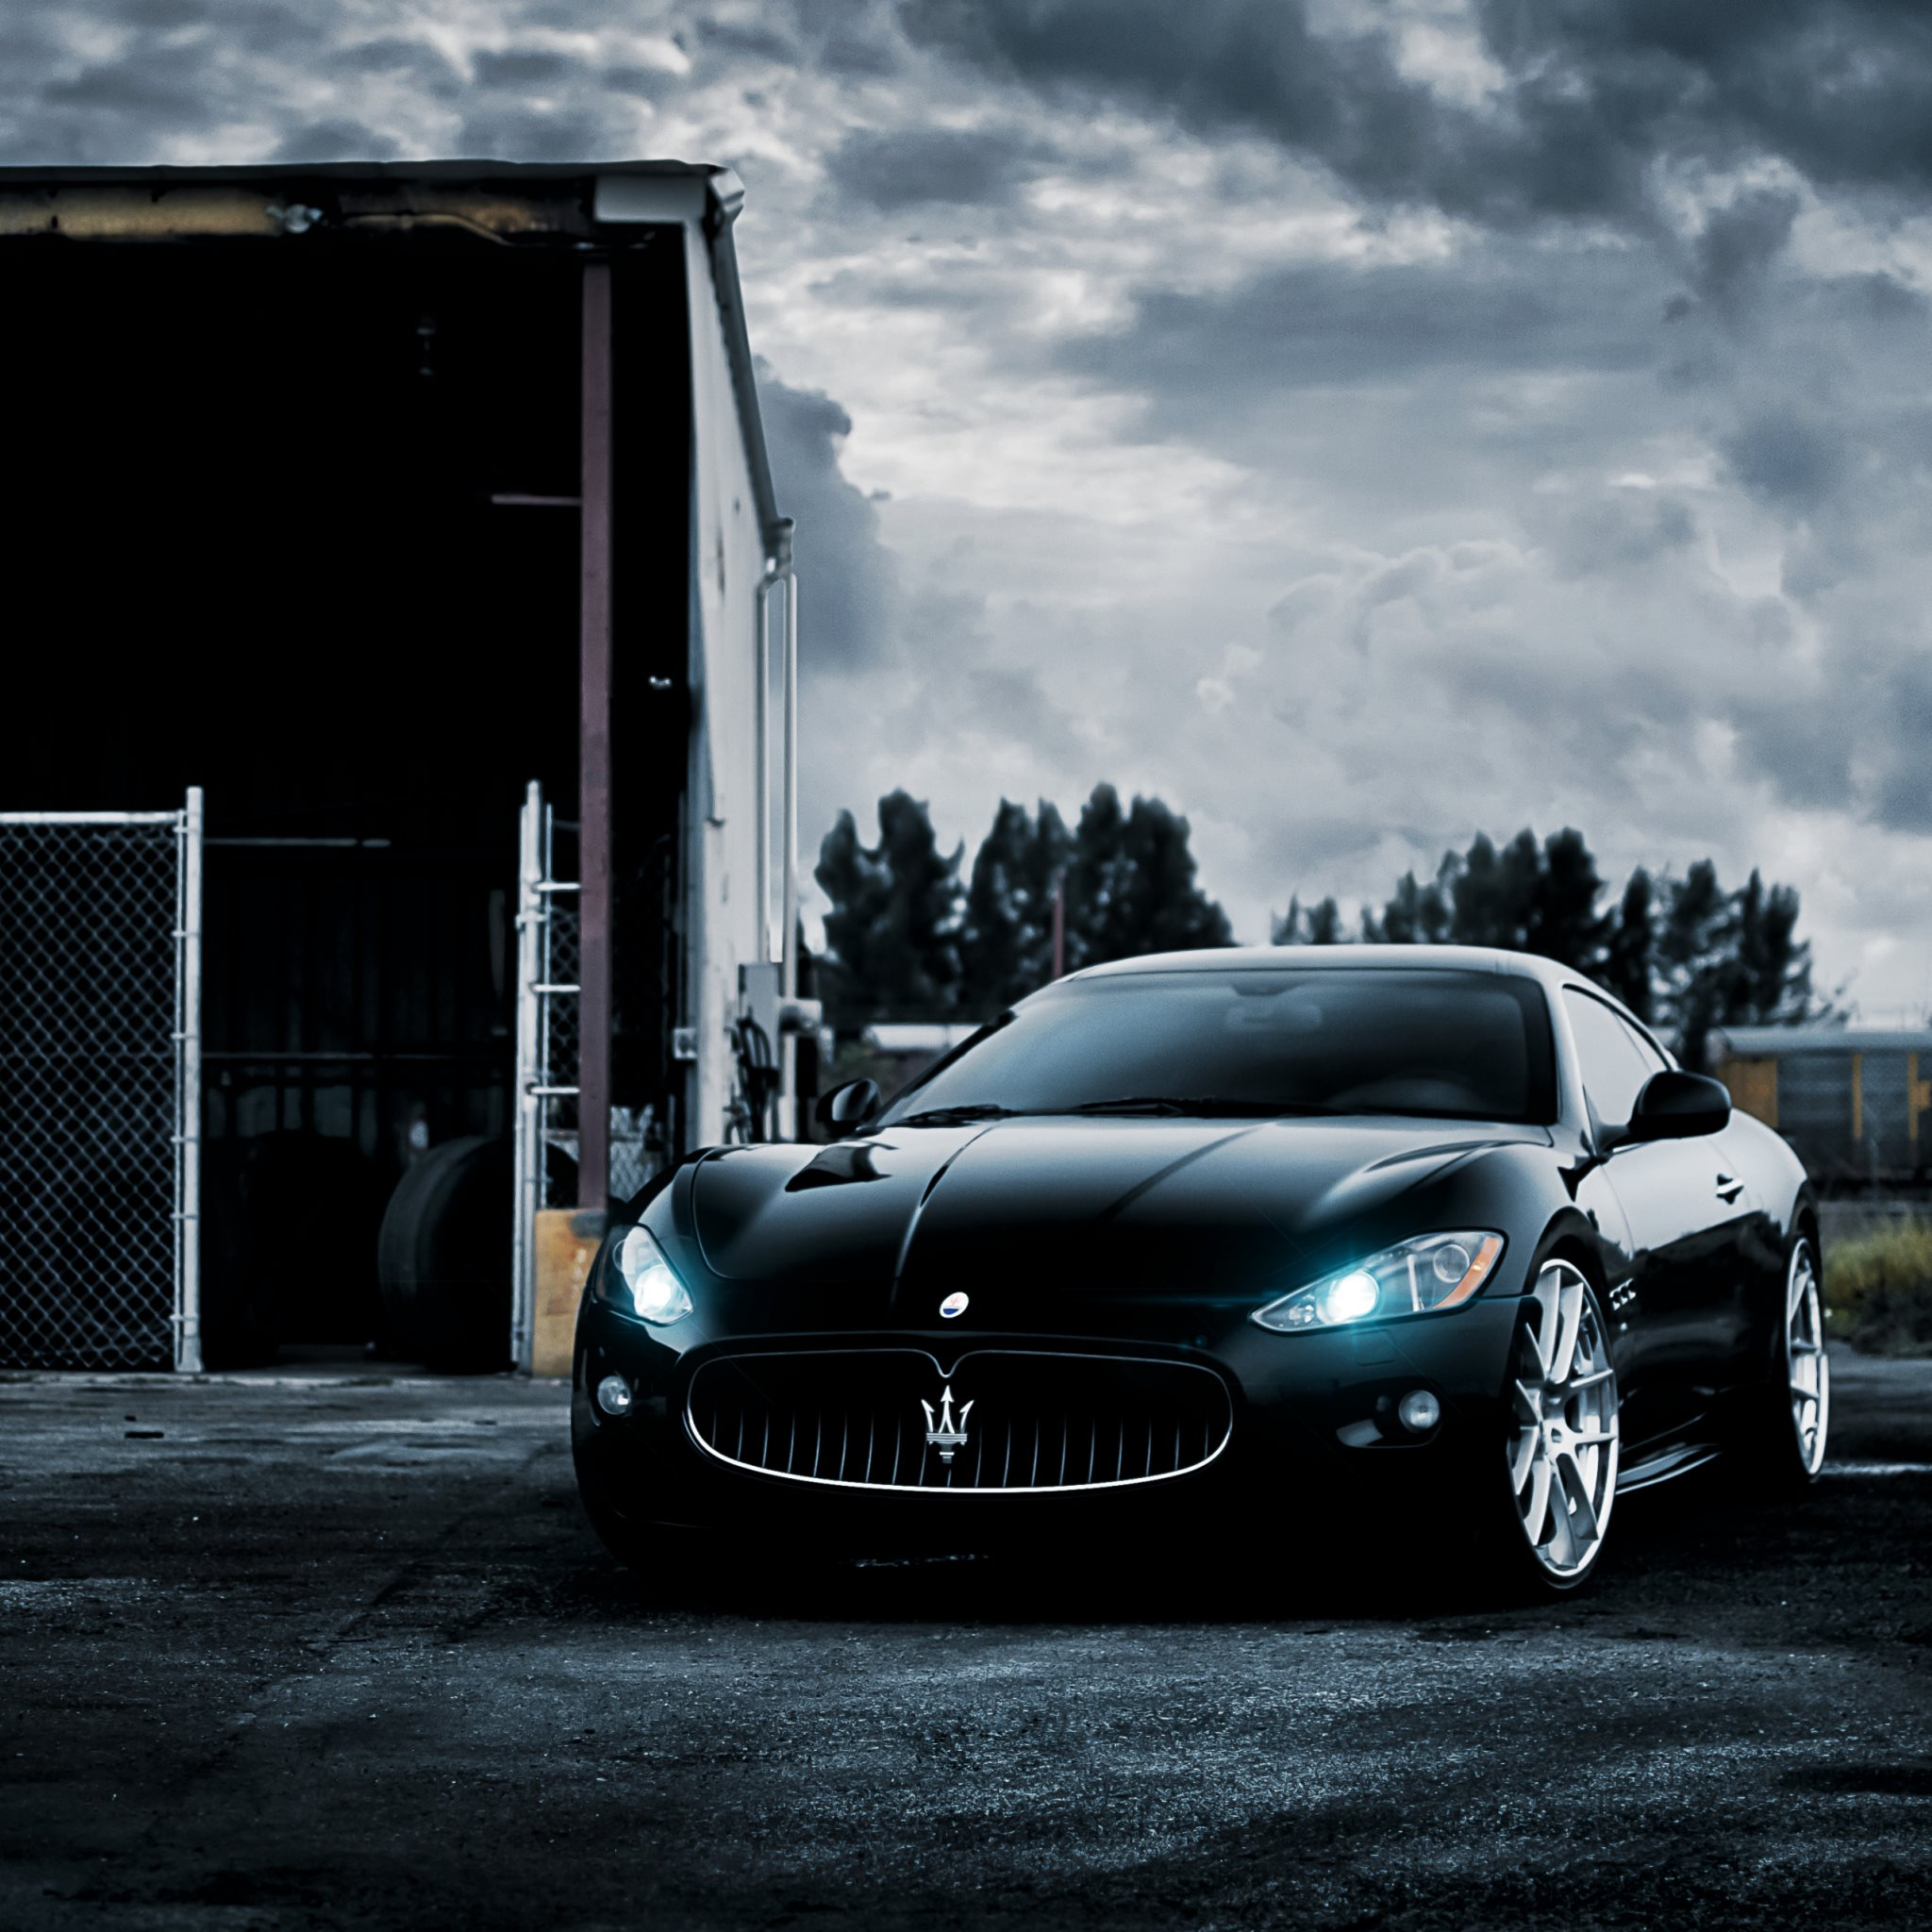 maserati quattroporte hd widescreen - photo #24